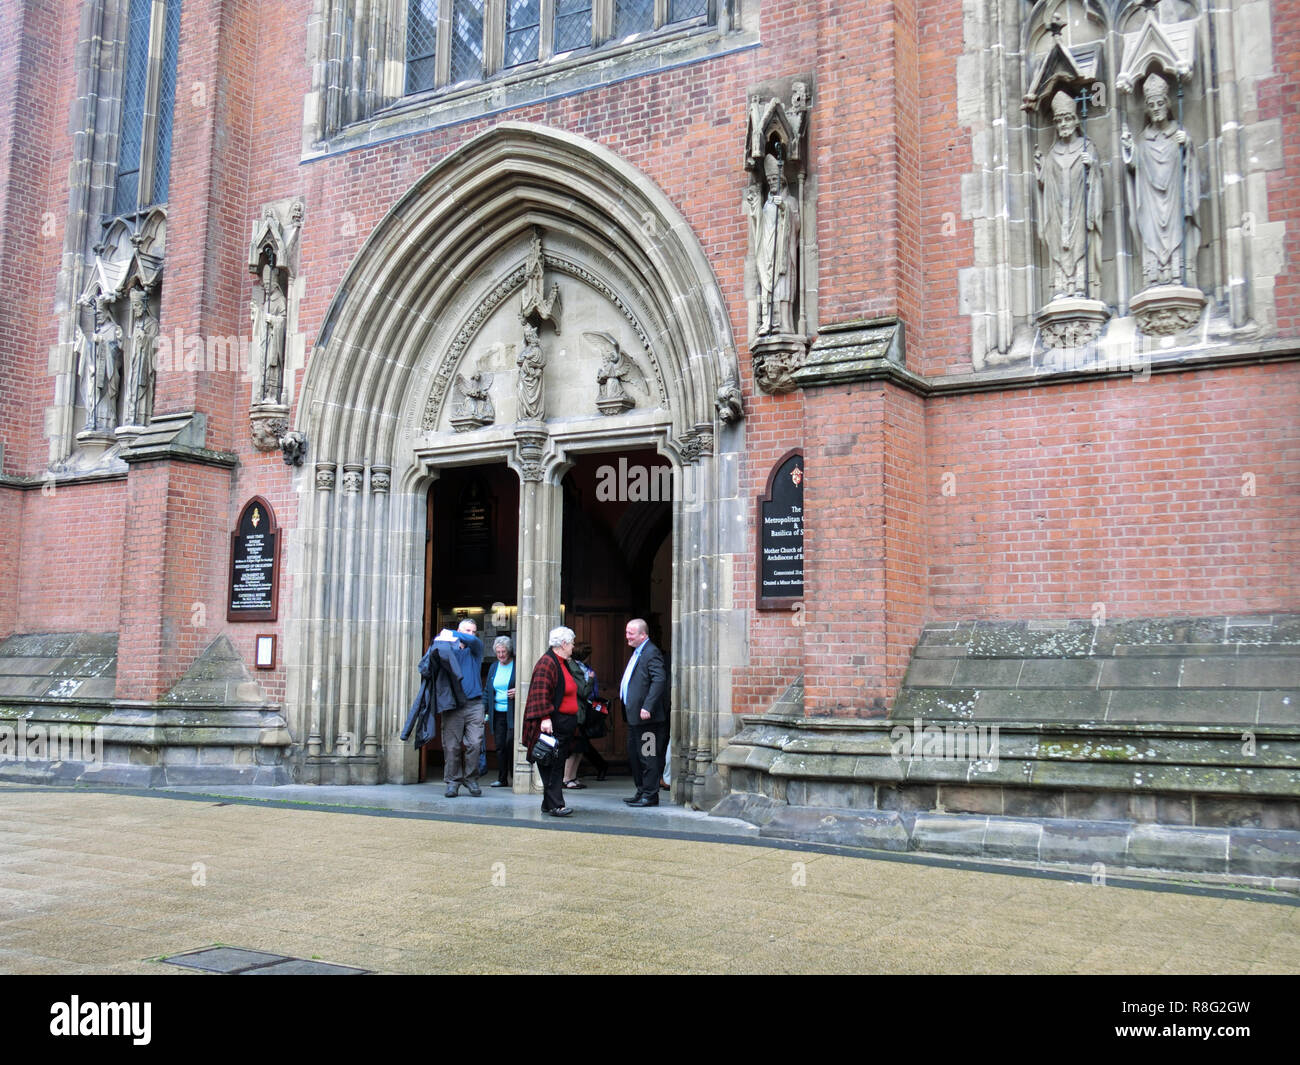 The Metropolitan Cathedral Church and Basilica of Saint Chad or St Chads Cathedral ( Roman Catholic ), Queensway, Birmingham, England, UK - Stock Image